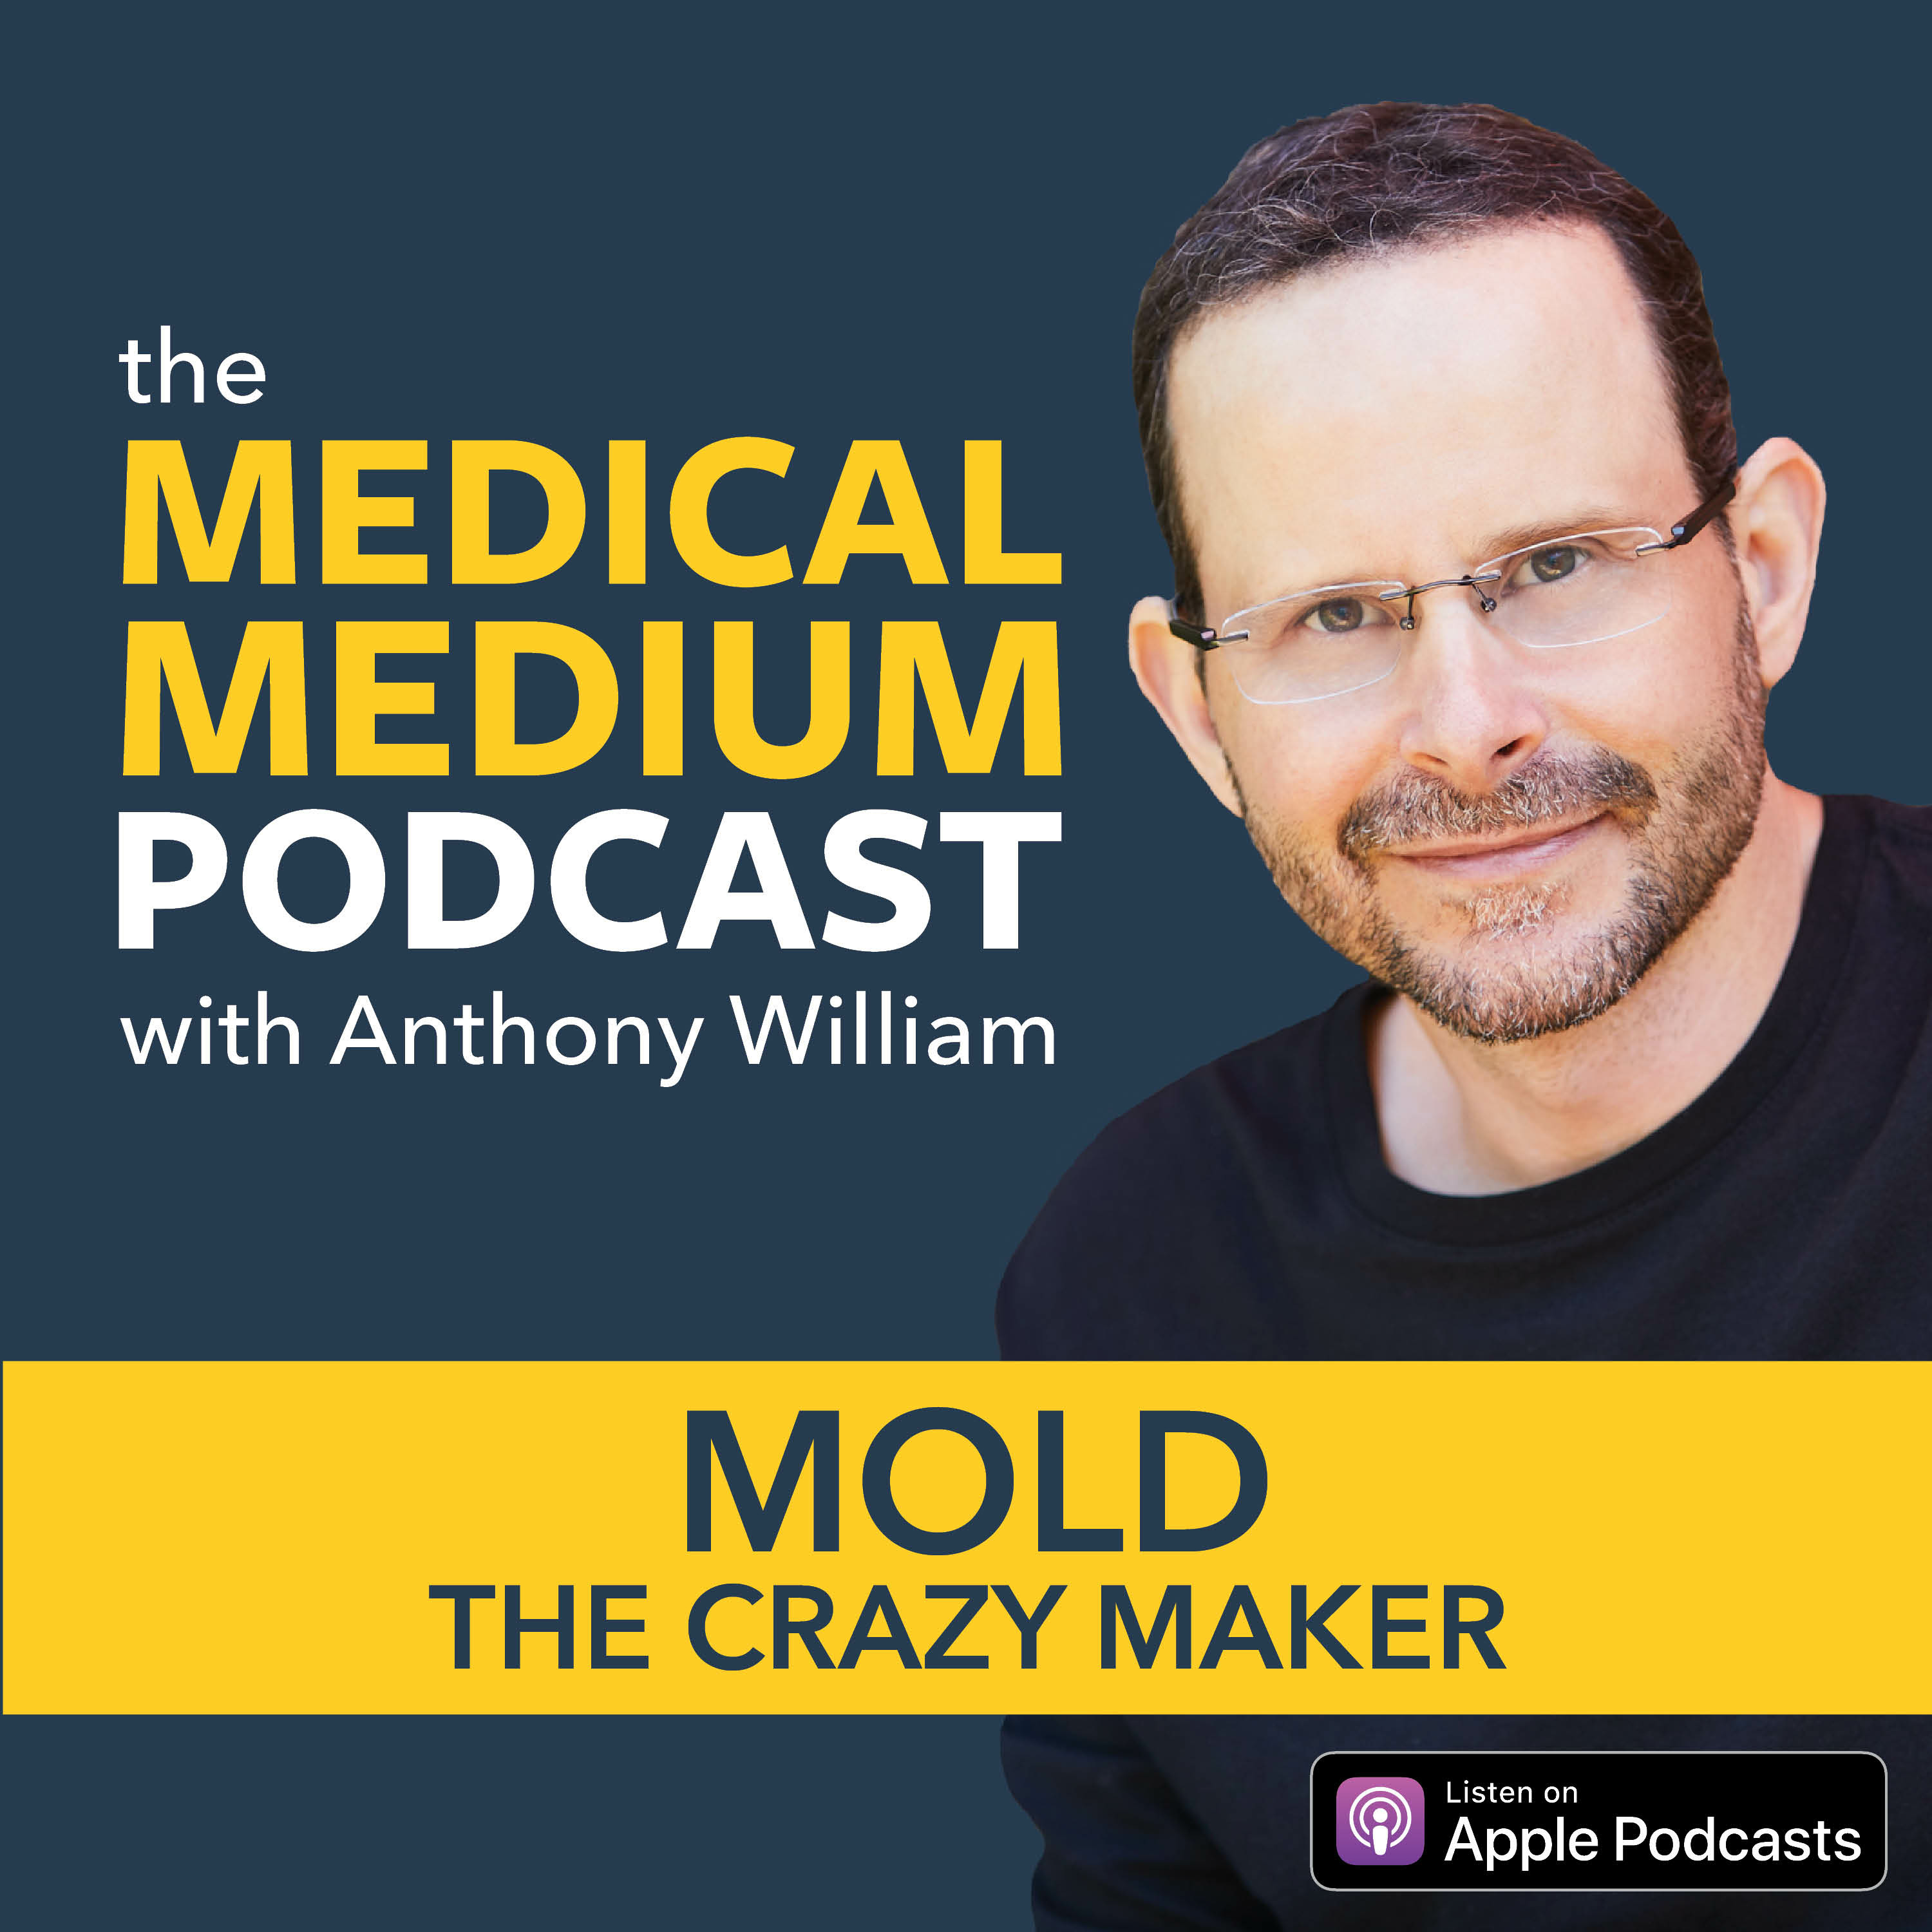 013 Mold: The Crazy Maker